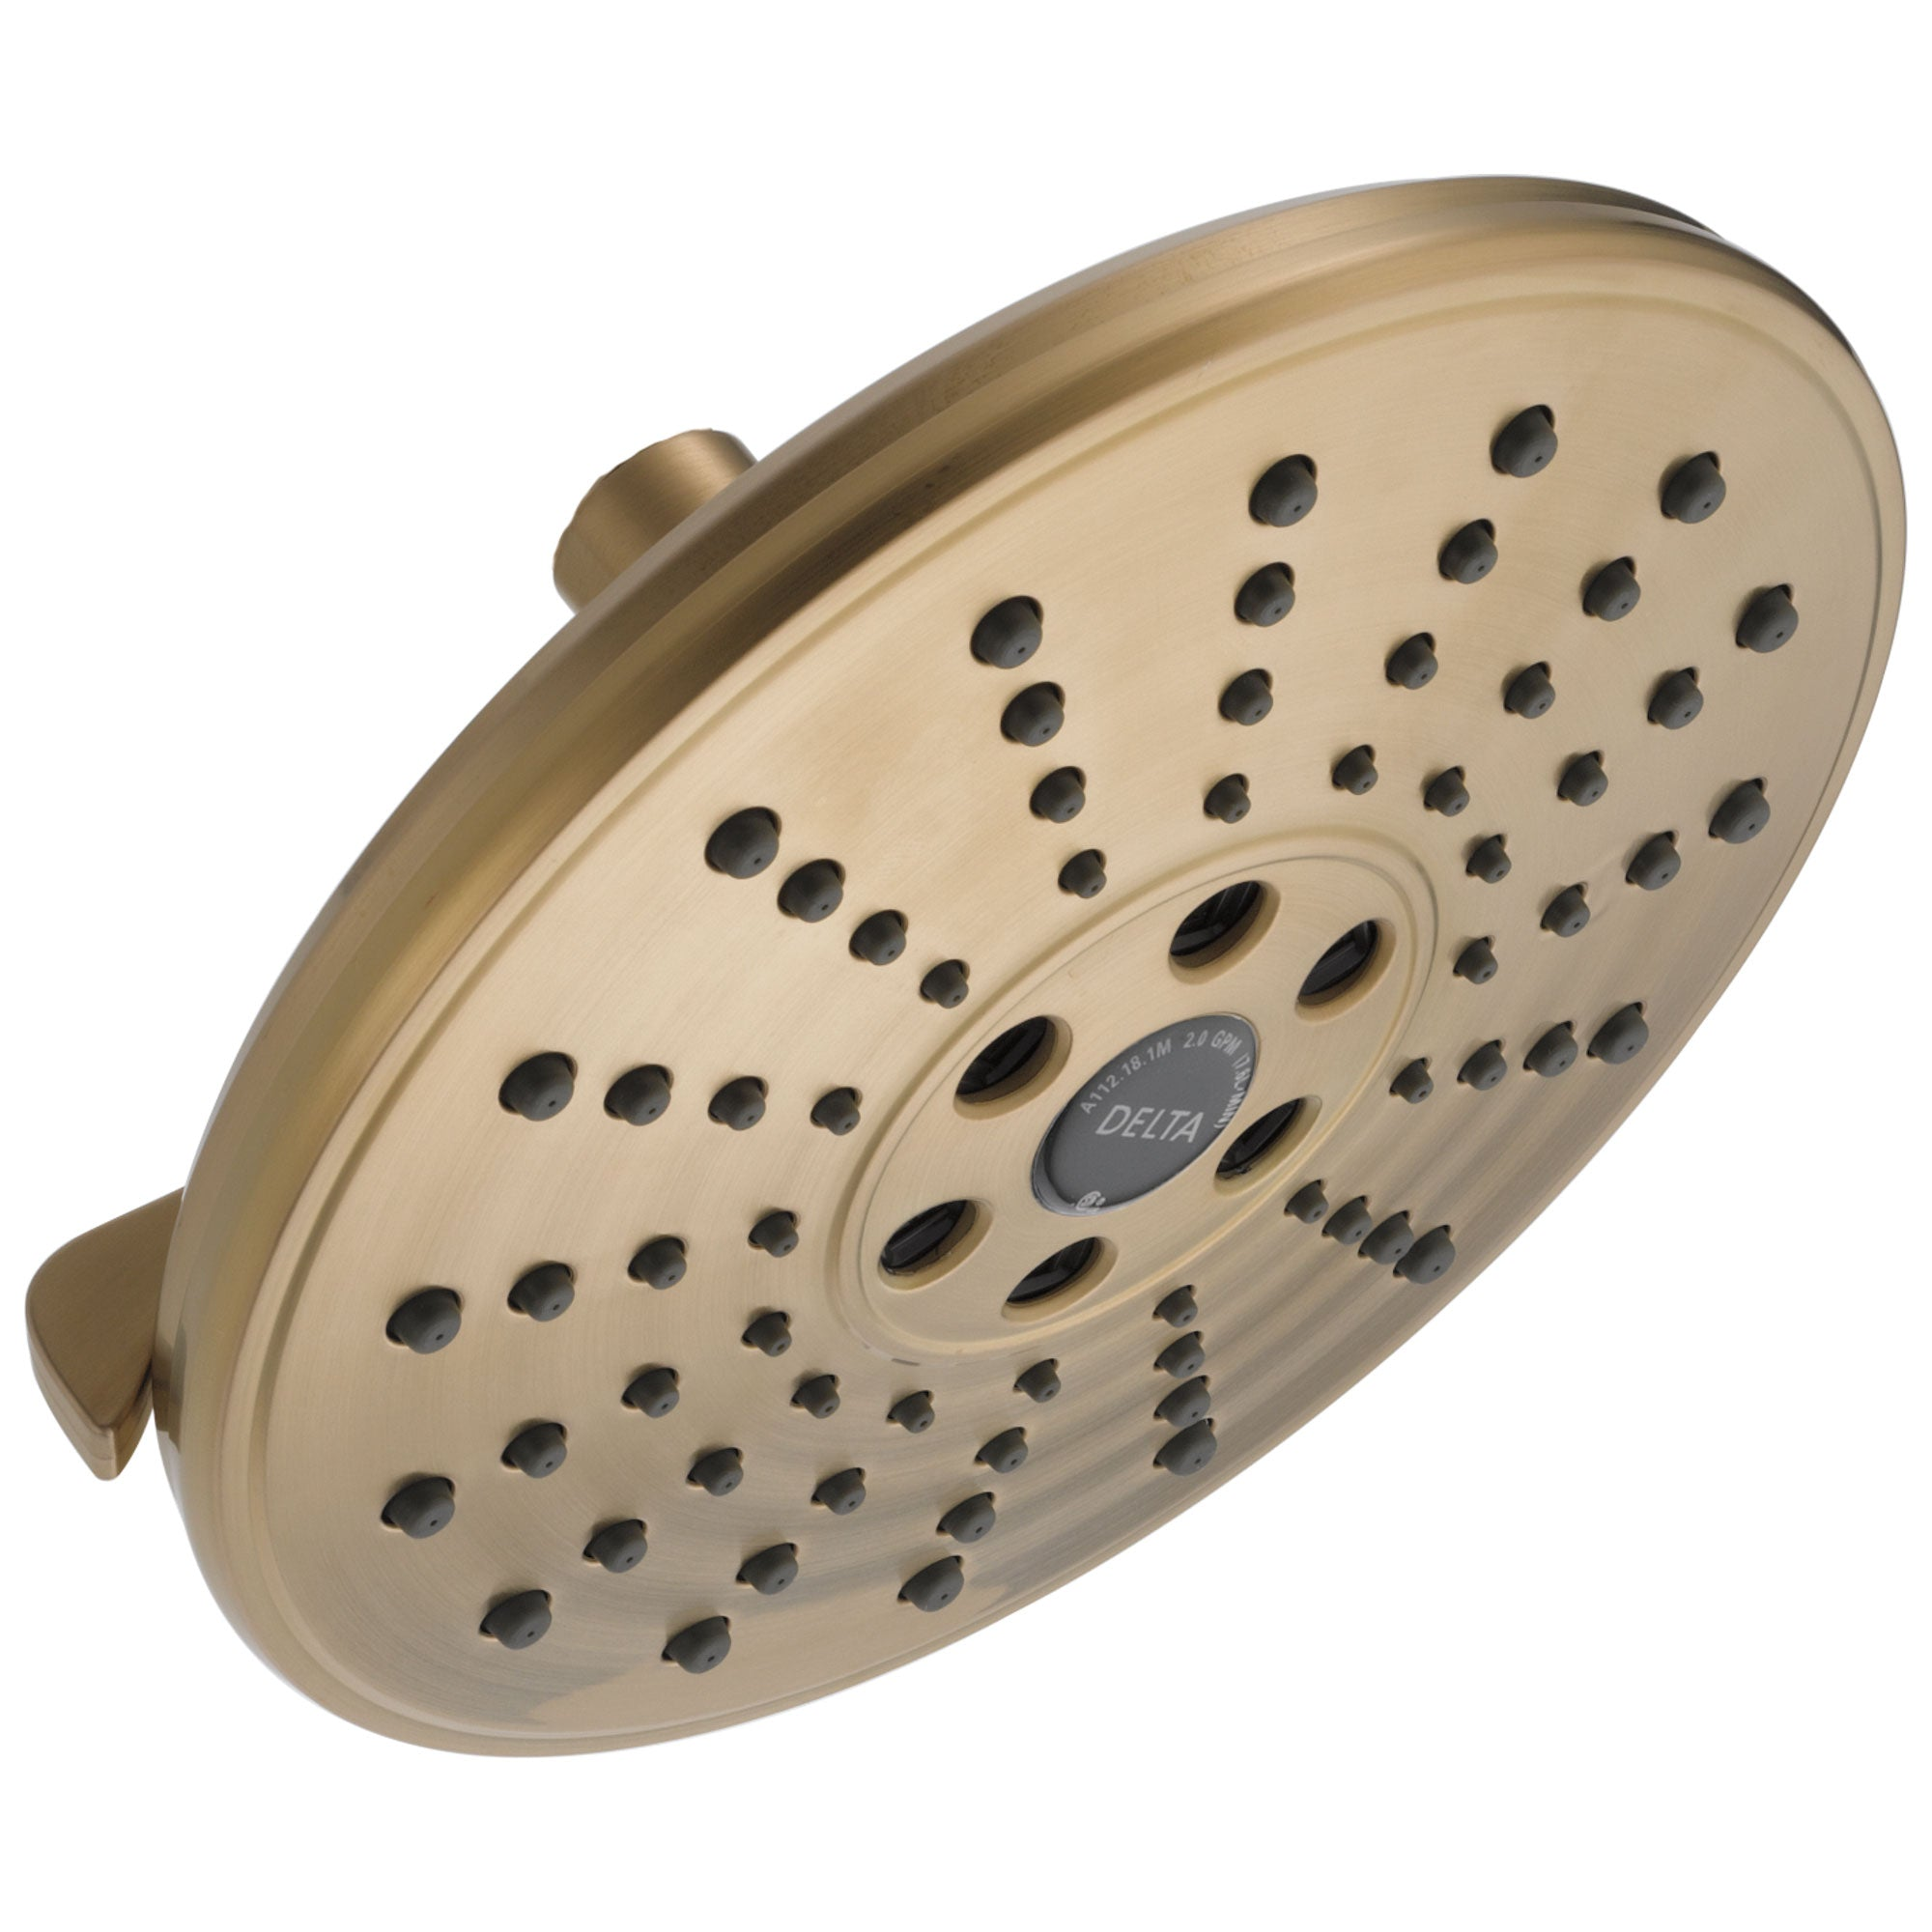 Delta Universal Showering Components Collection Champagne Bronze Finish H2Okinetic 3-Setting Raincan Shower Head D52688CZ